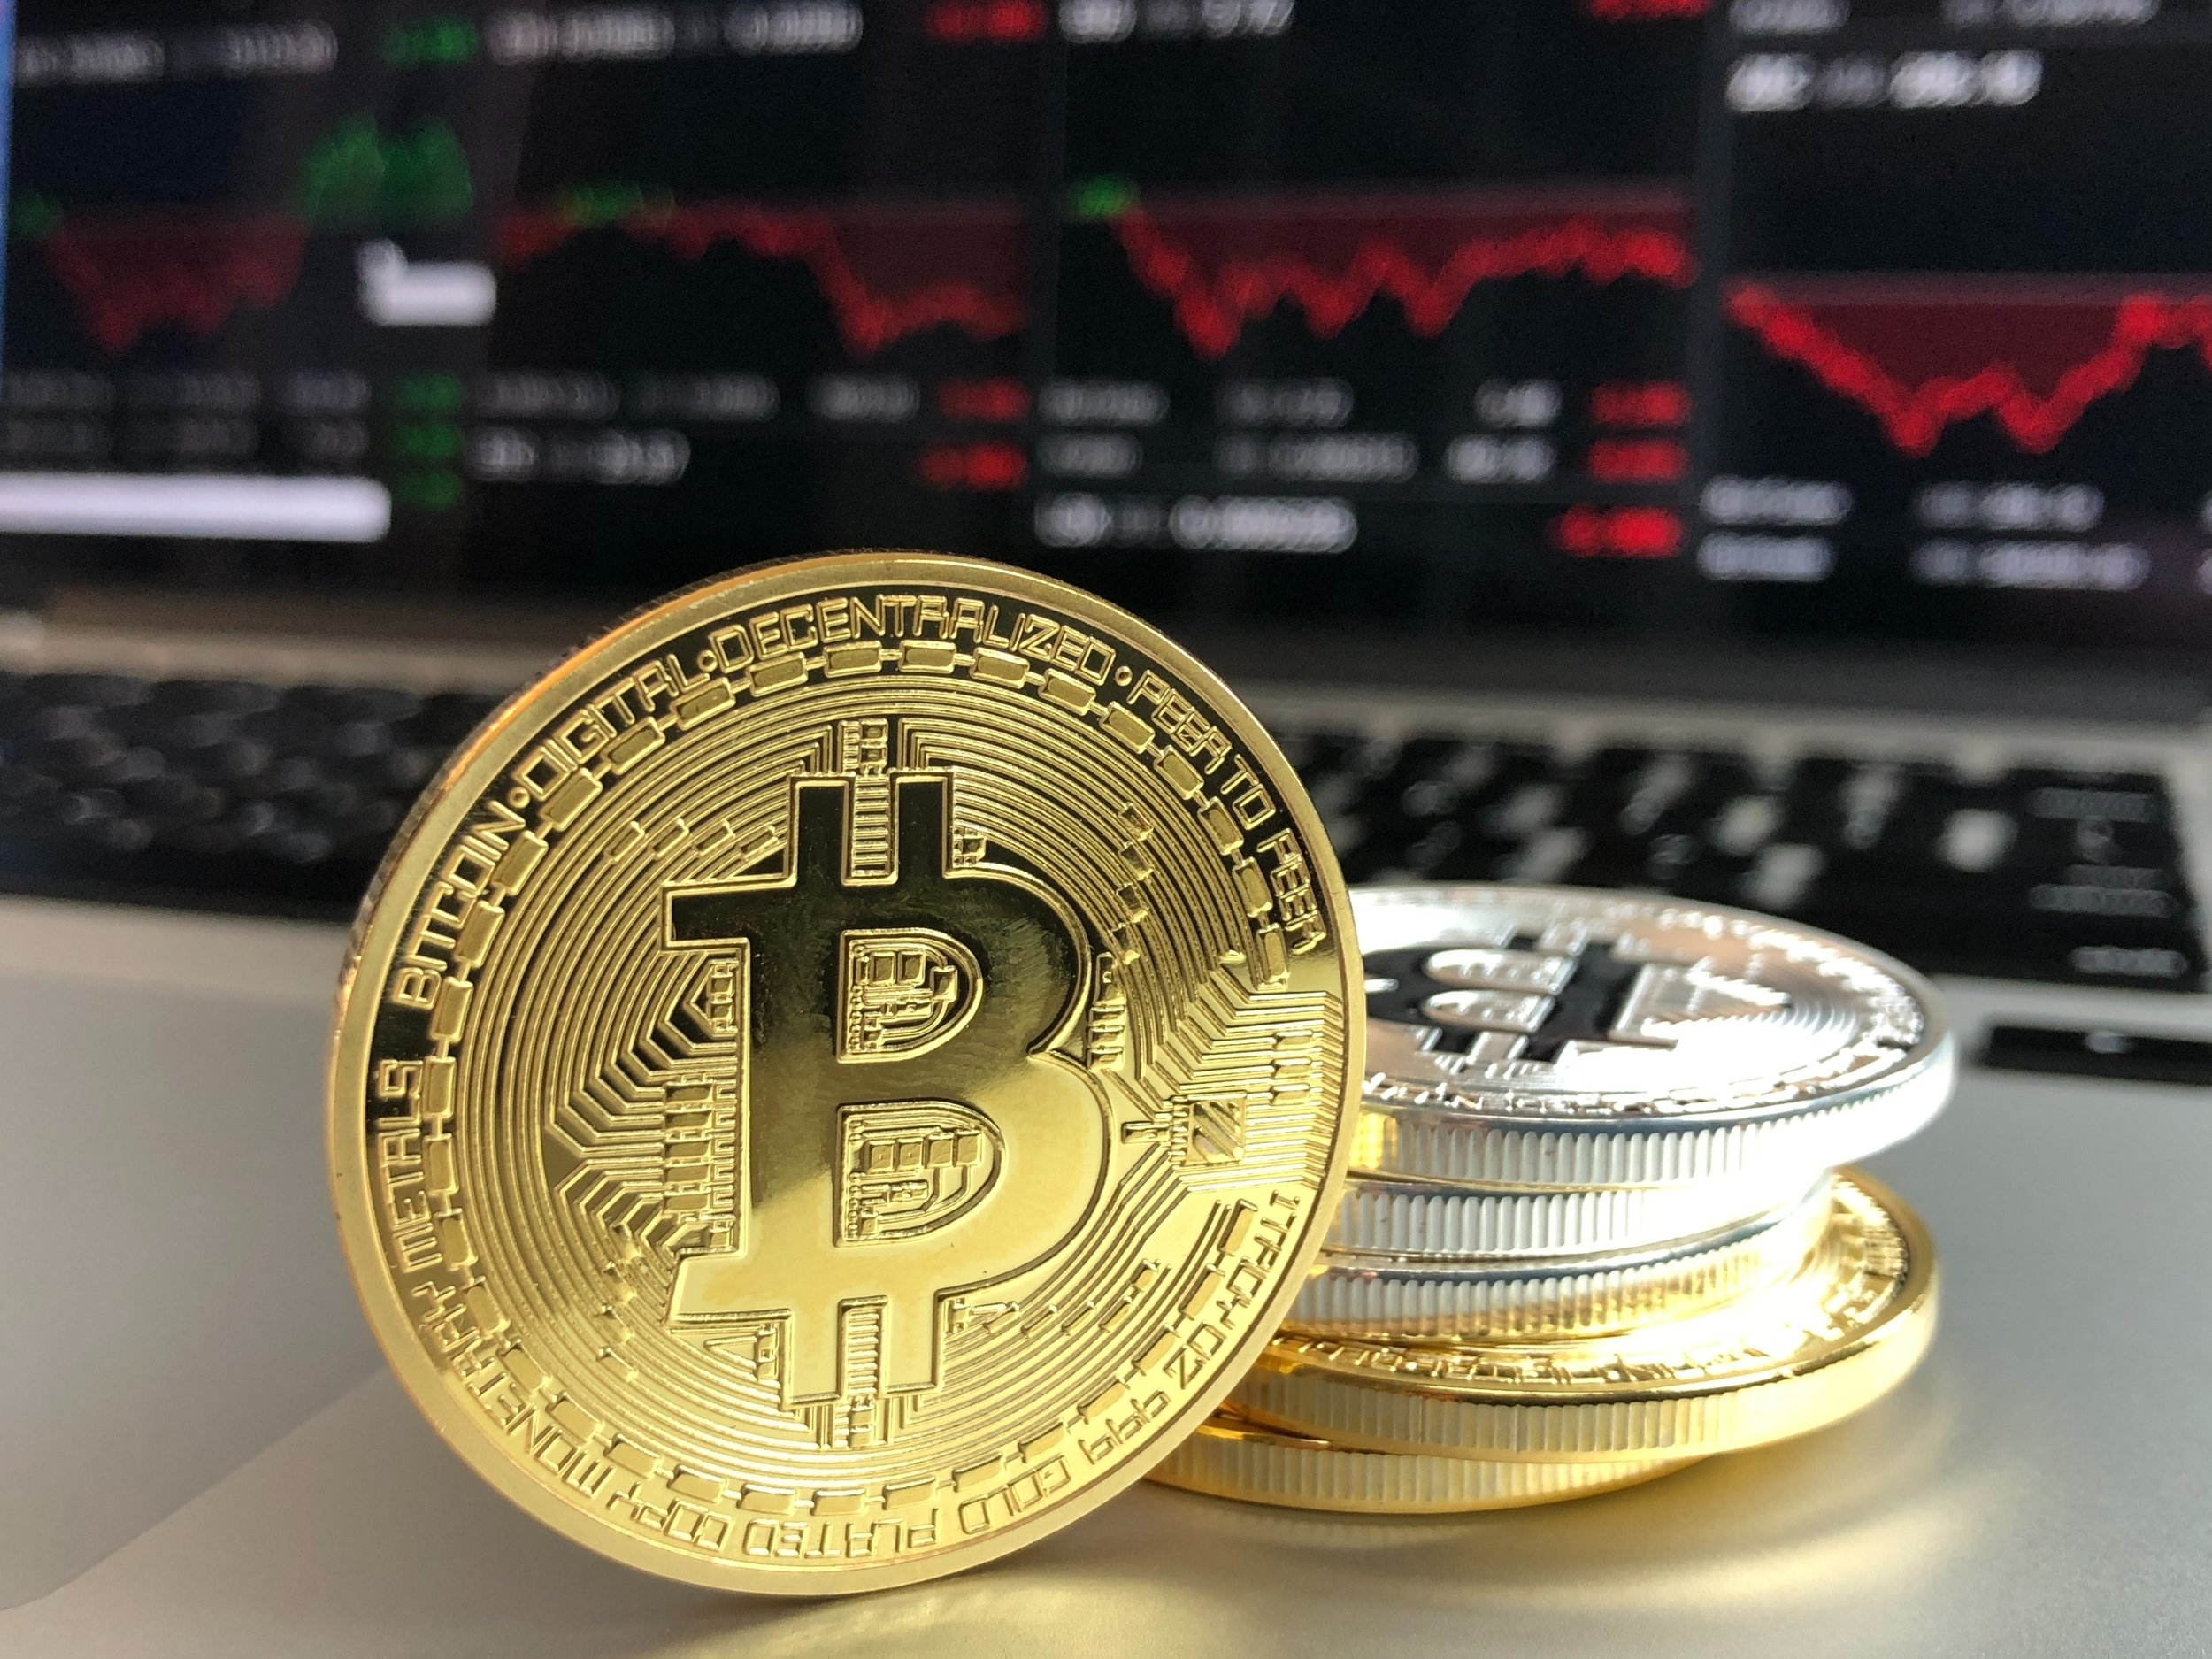 The emergence of ICOs and the associated regulatory concerns (Part 2 of 2) - By Monica Goyal